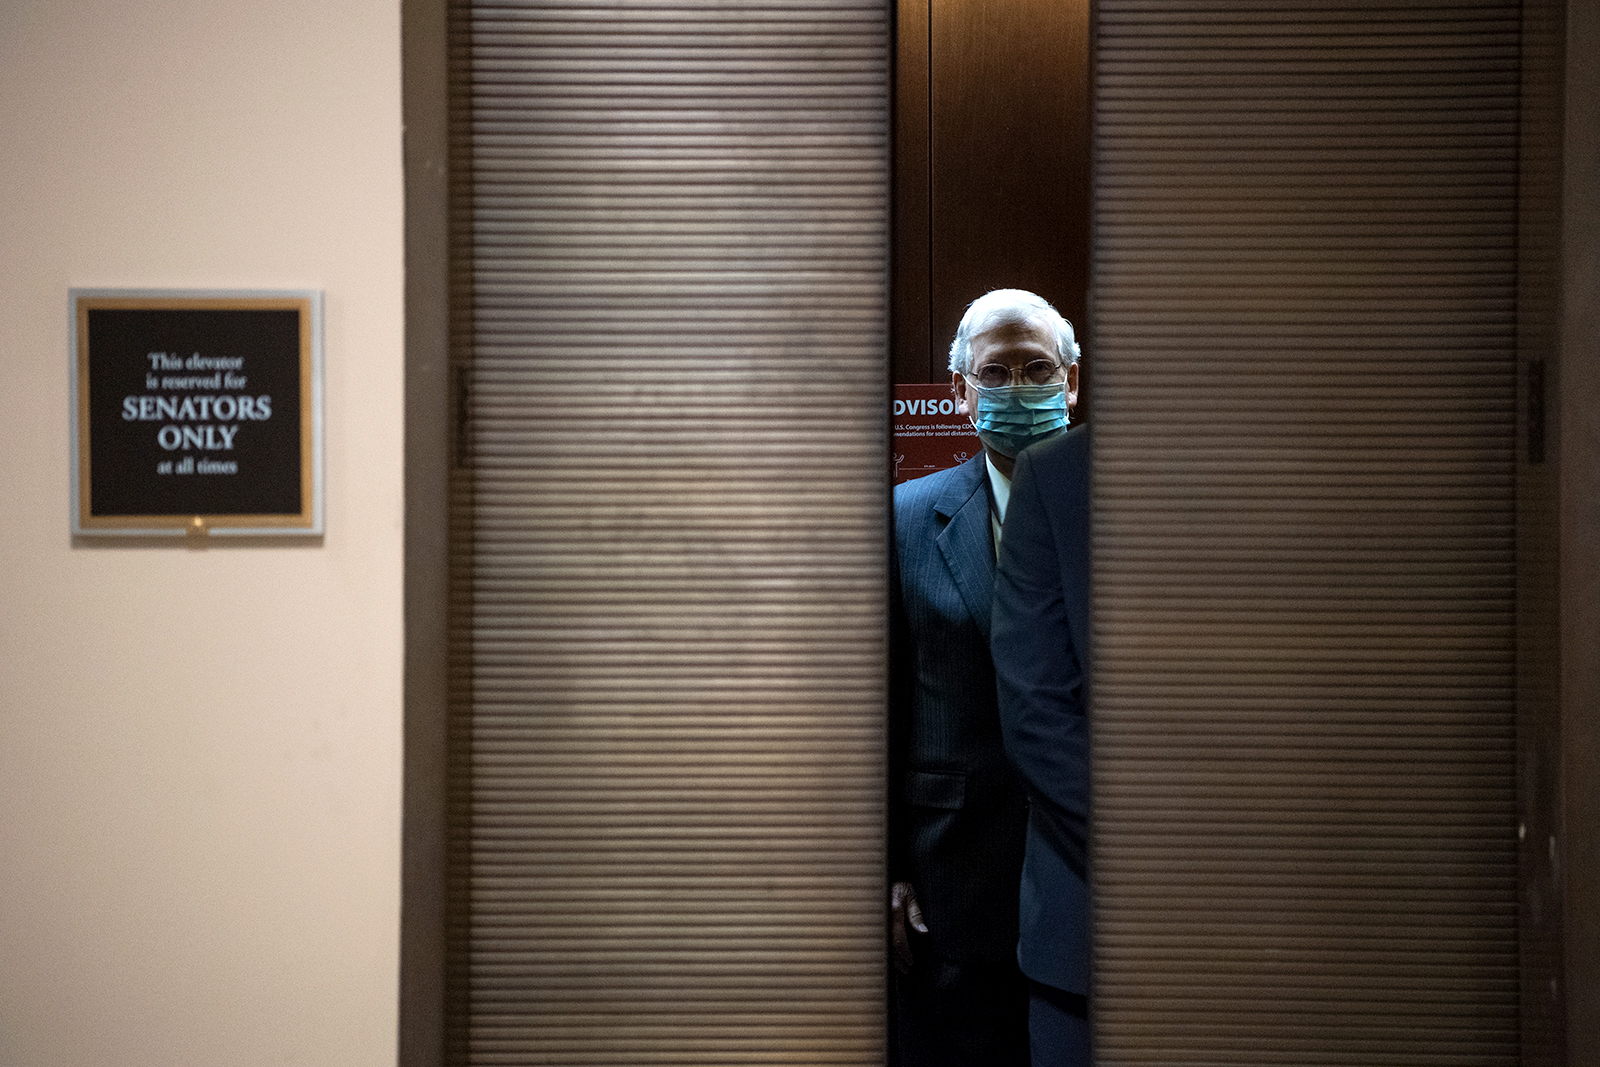 Senate Majority Leader Mitch McConnell, takes the elevator in the Hart Building in the Capitol in Washington, DC on July 1.